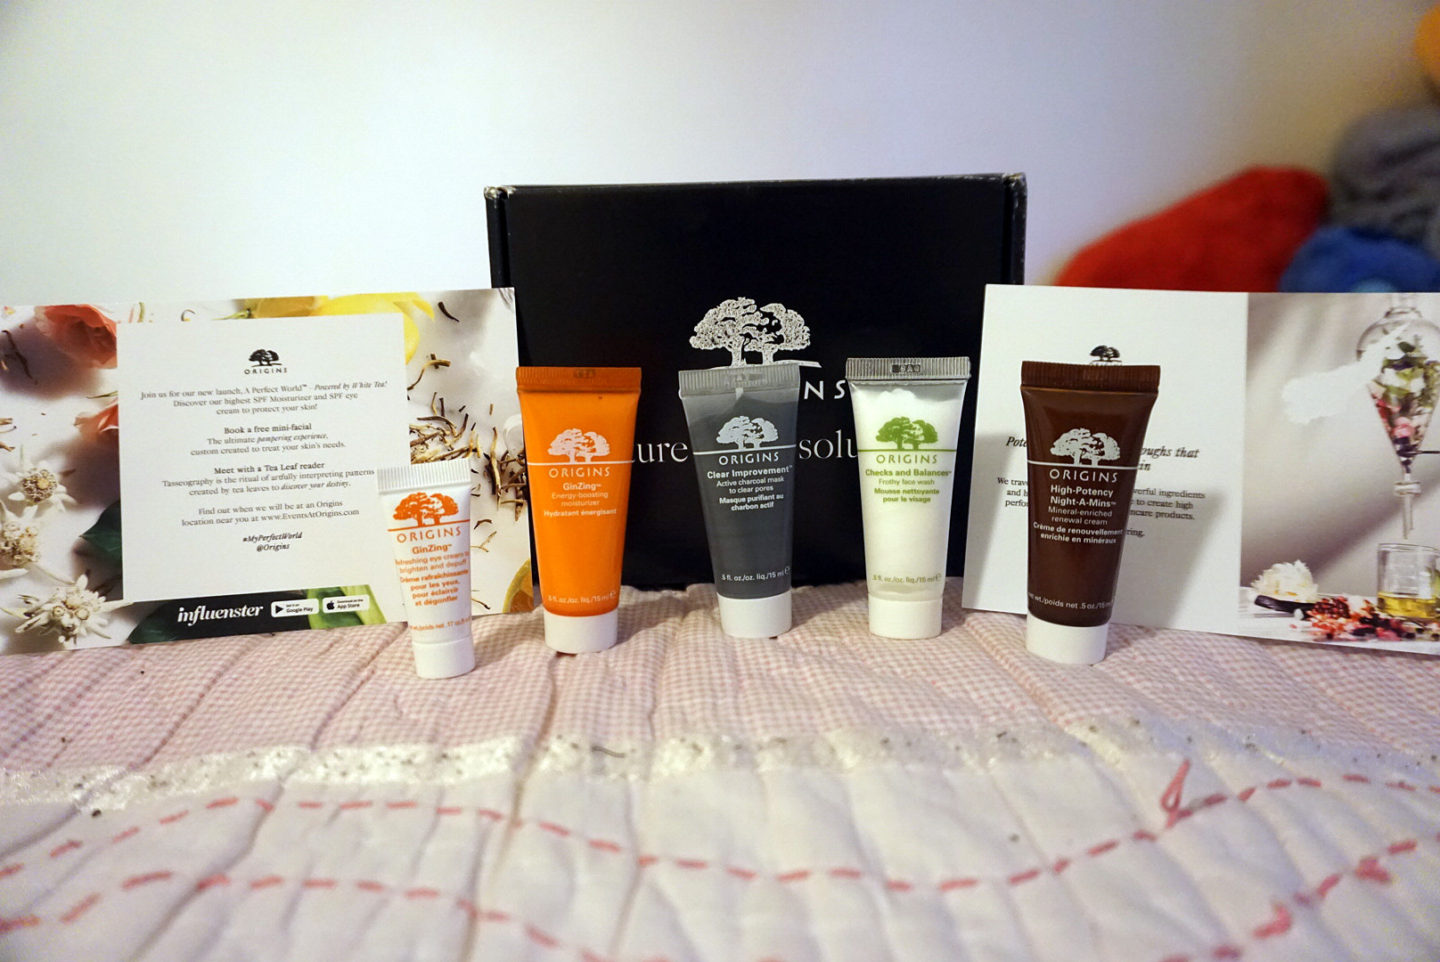 Influenster: Origins Voxbox Review